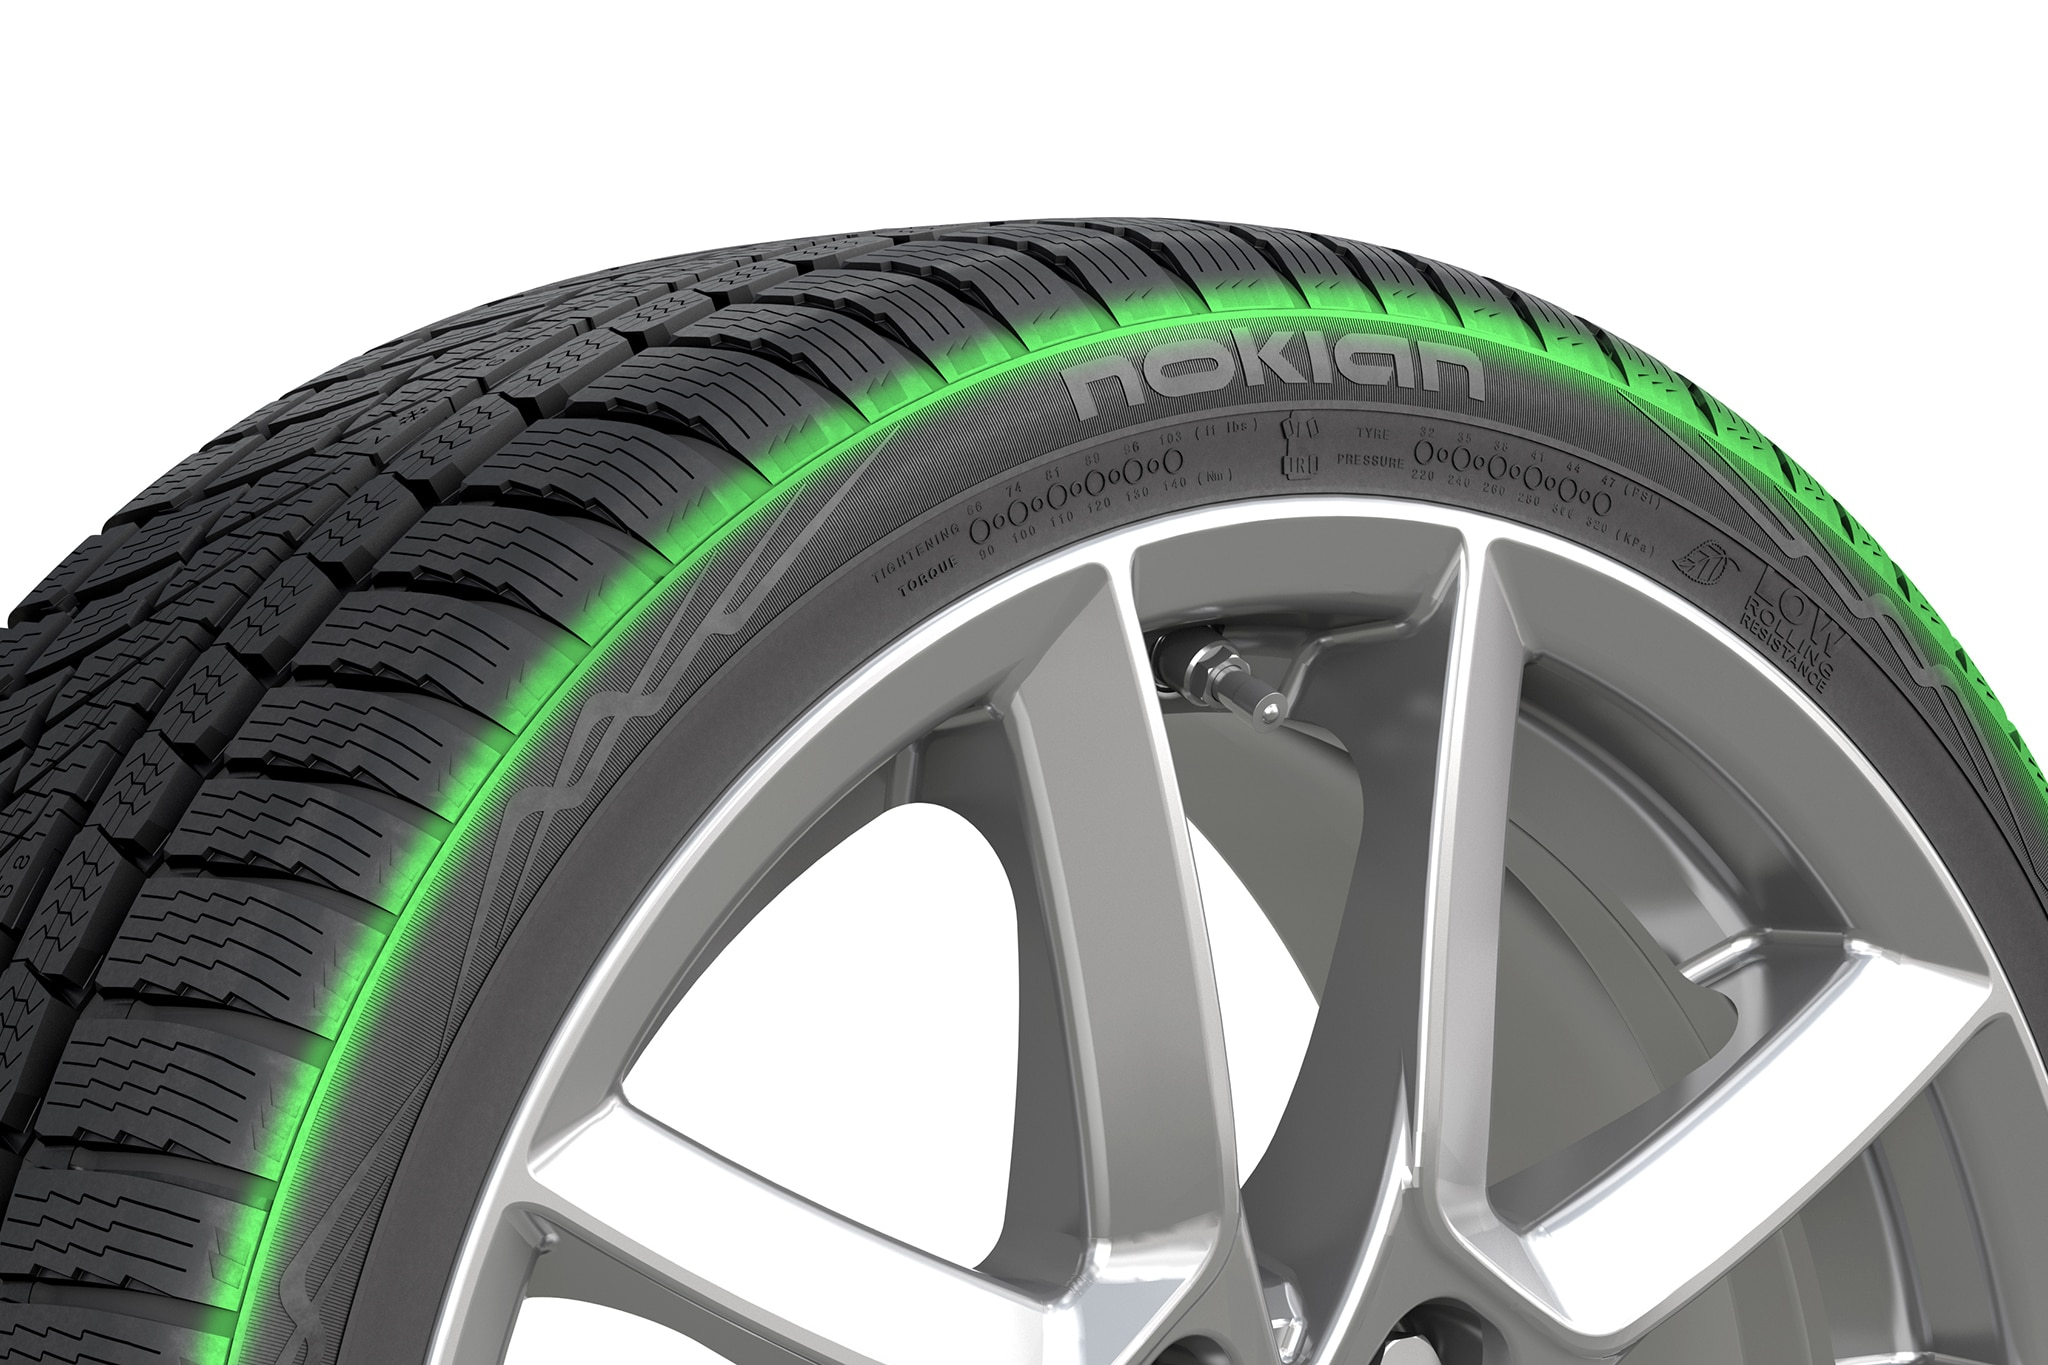 Best All Season Tires >> Nokian WR G4 Tire: It's All-Weather, Not All-Season | Automobile Magazine